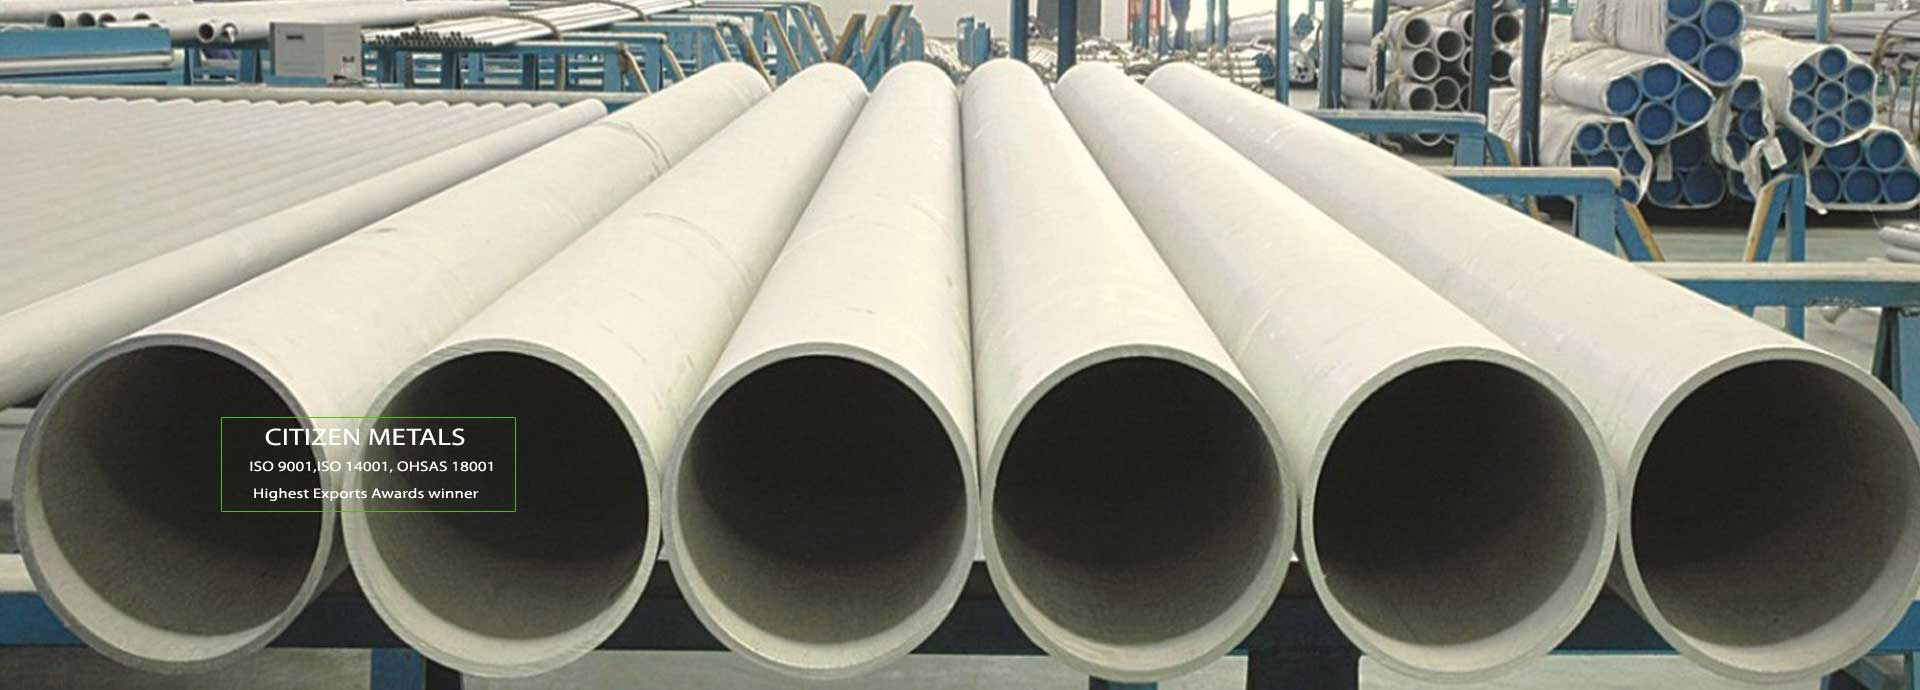 ASTM B 619 Hastelloy C22 Welded Pipe